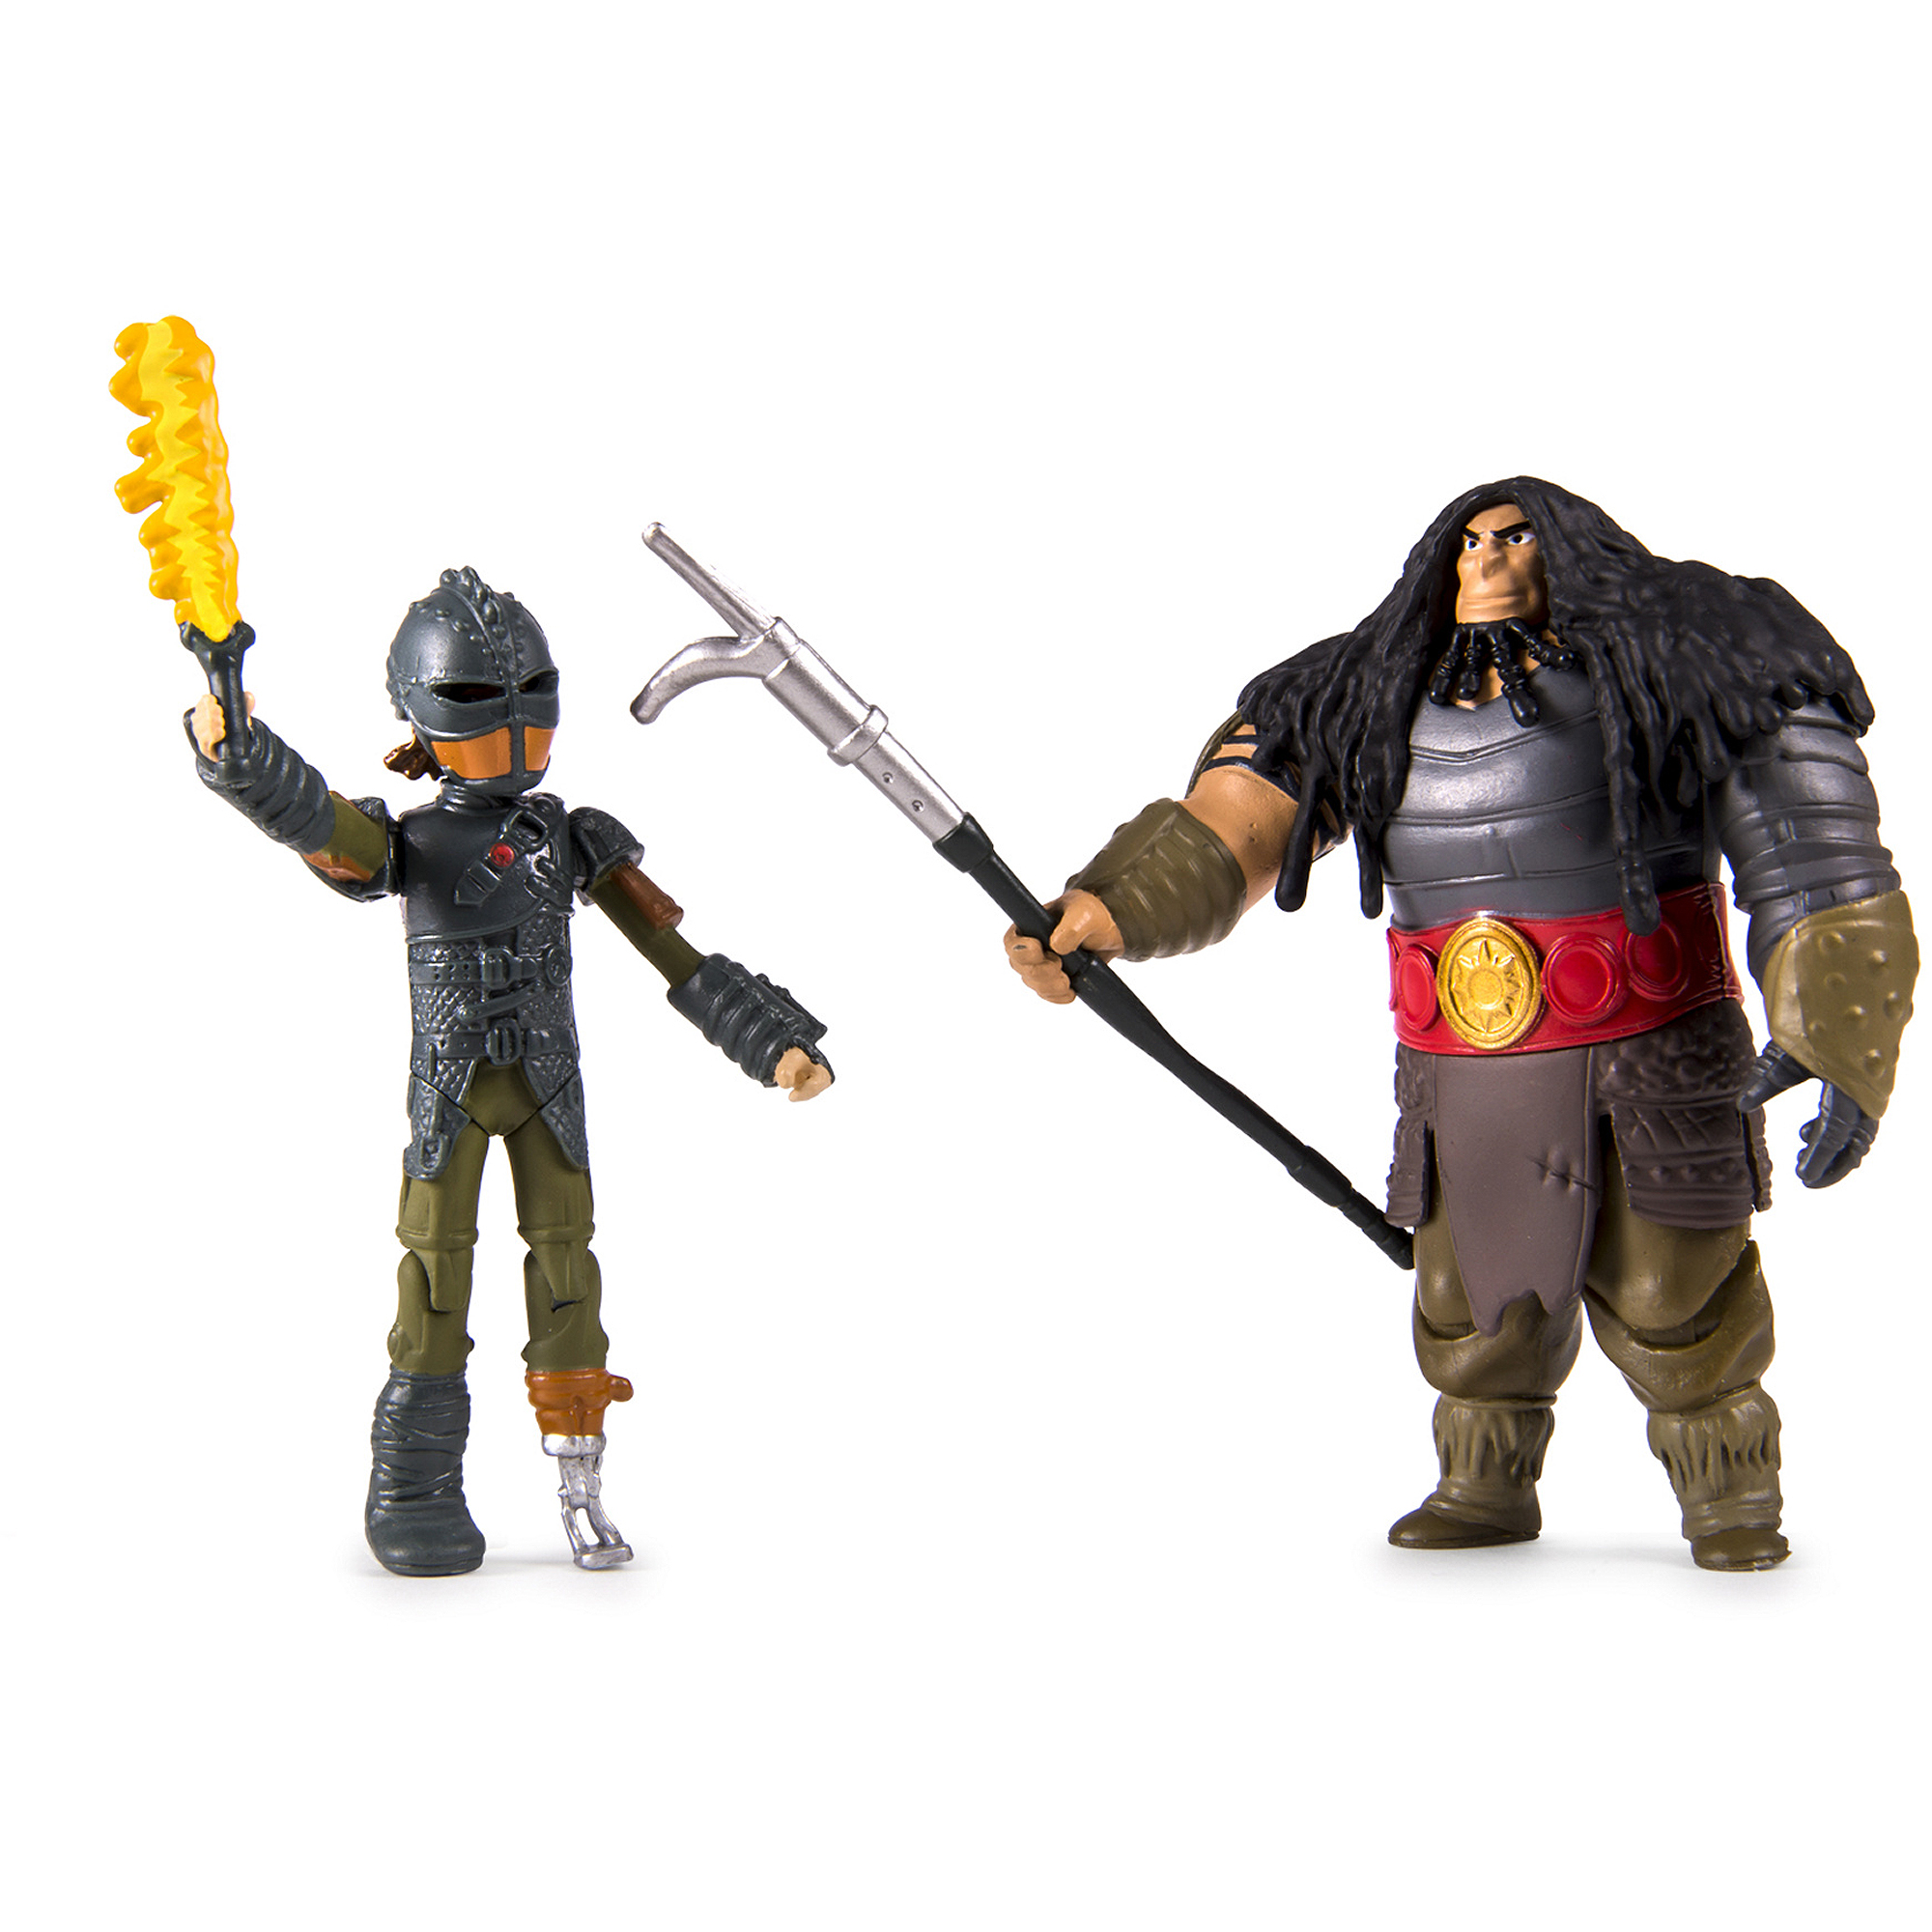 DreamWorks Dragons: How to Train Your Dragon 2 Viking Warrior 2-Pack, Hiccup vs. Drago